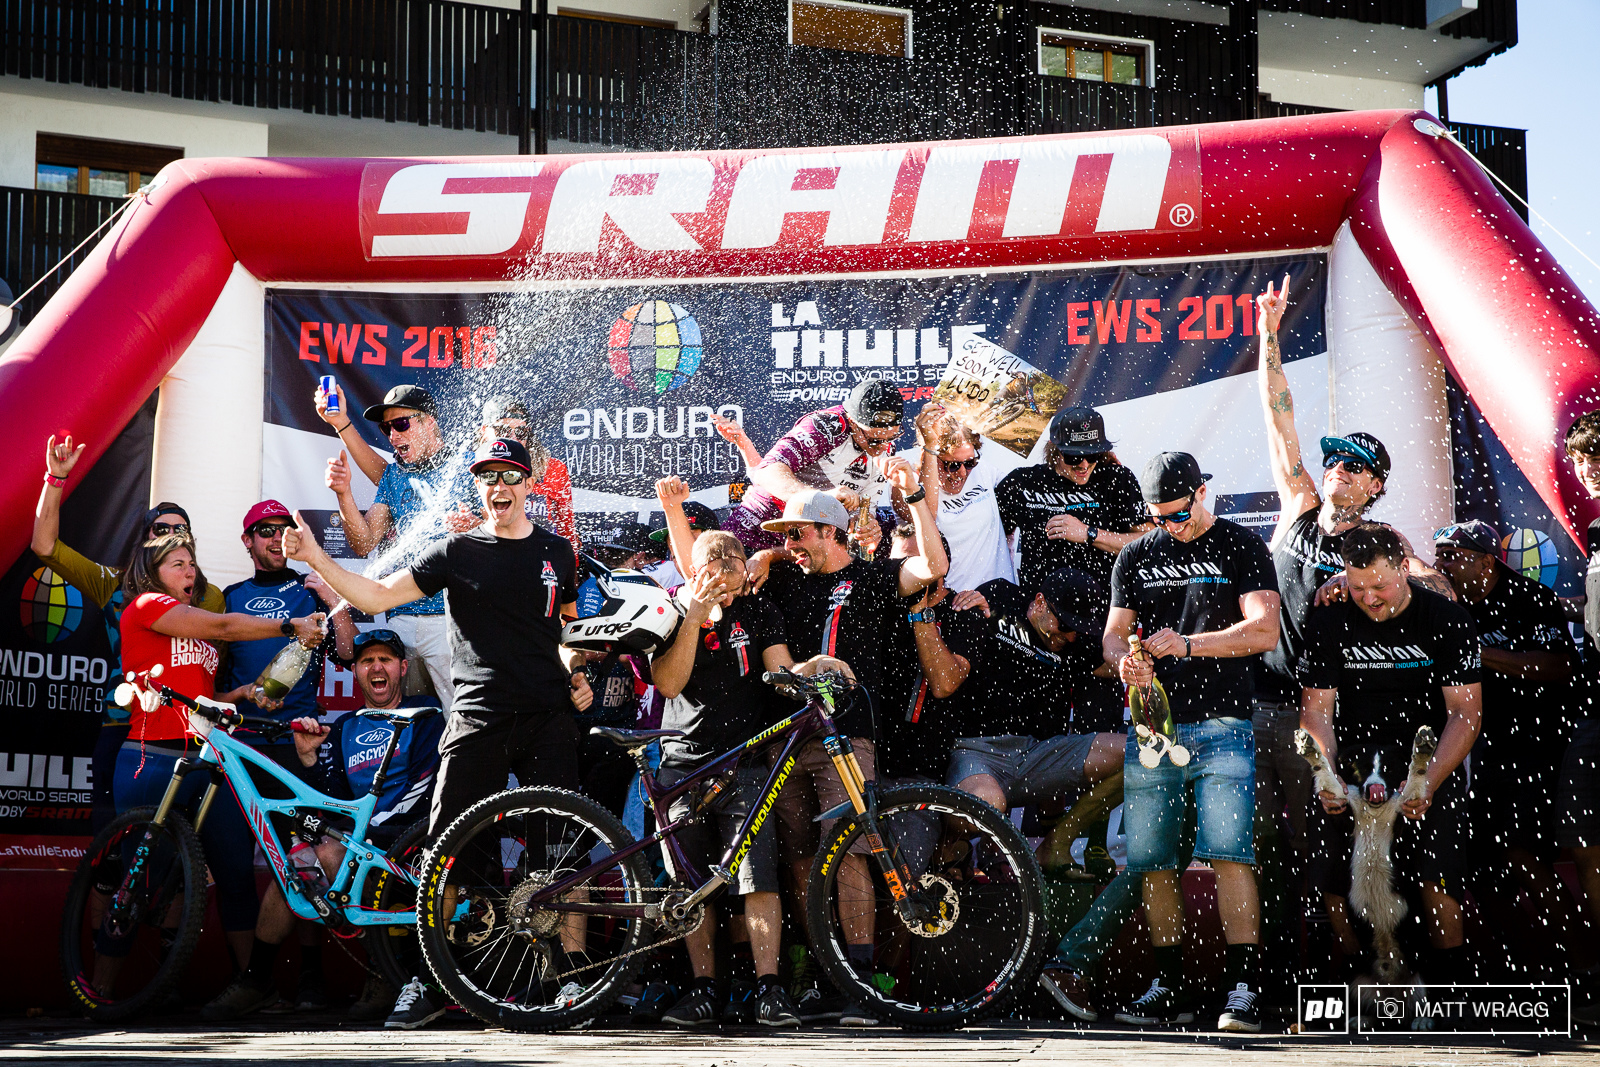 The team podium is always a slightly crazy end to the weekend - it is the chance for the mechanics and team managers who work so hard to get the riders out there and racing to join them on the stage and take their moment in the sun.